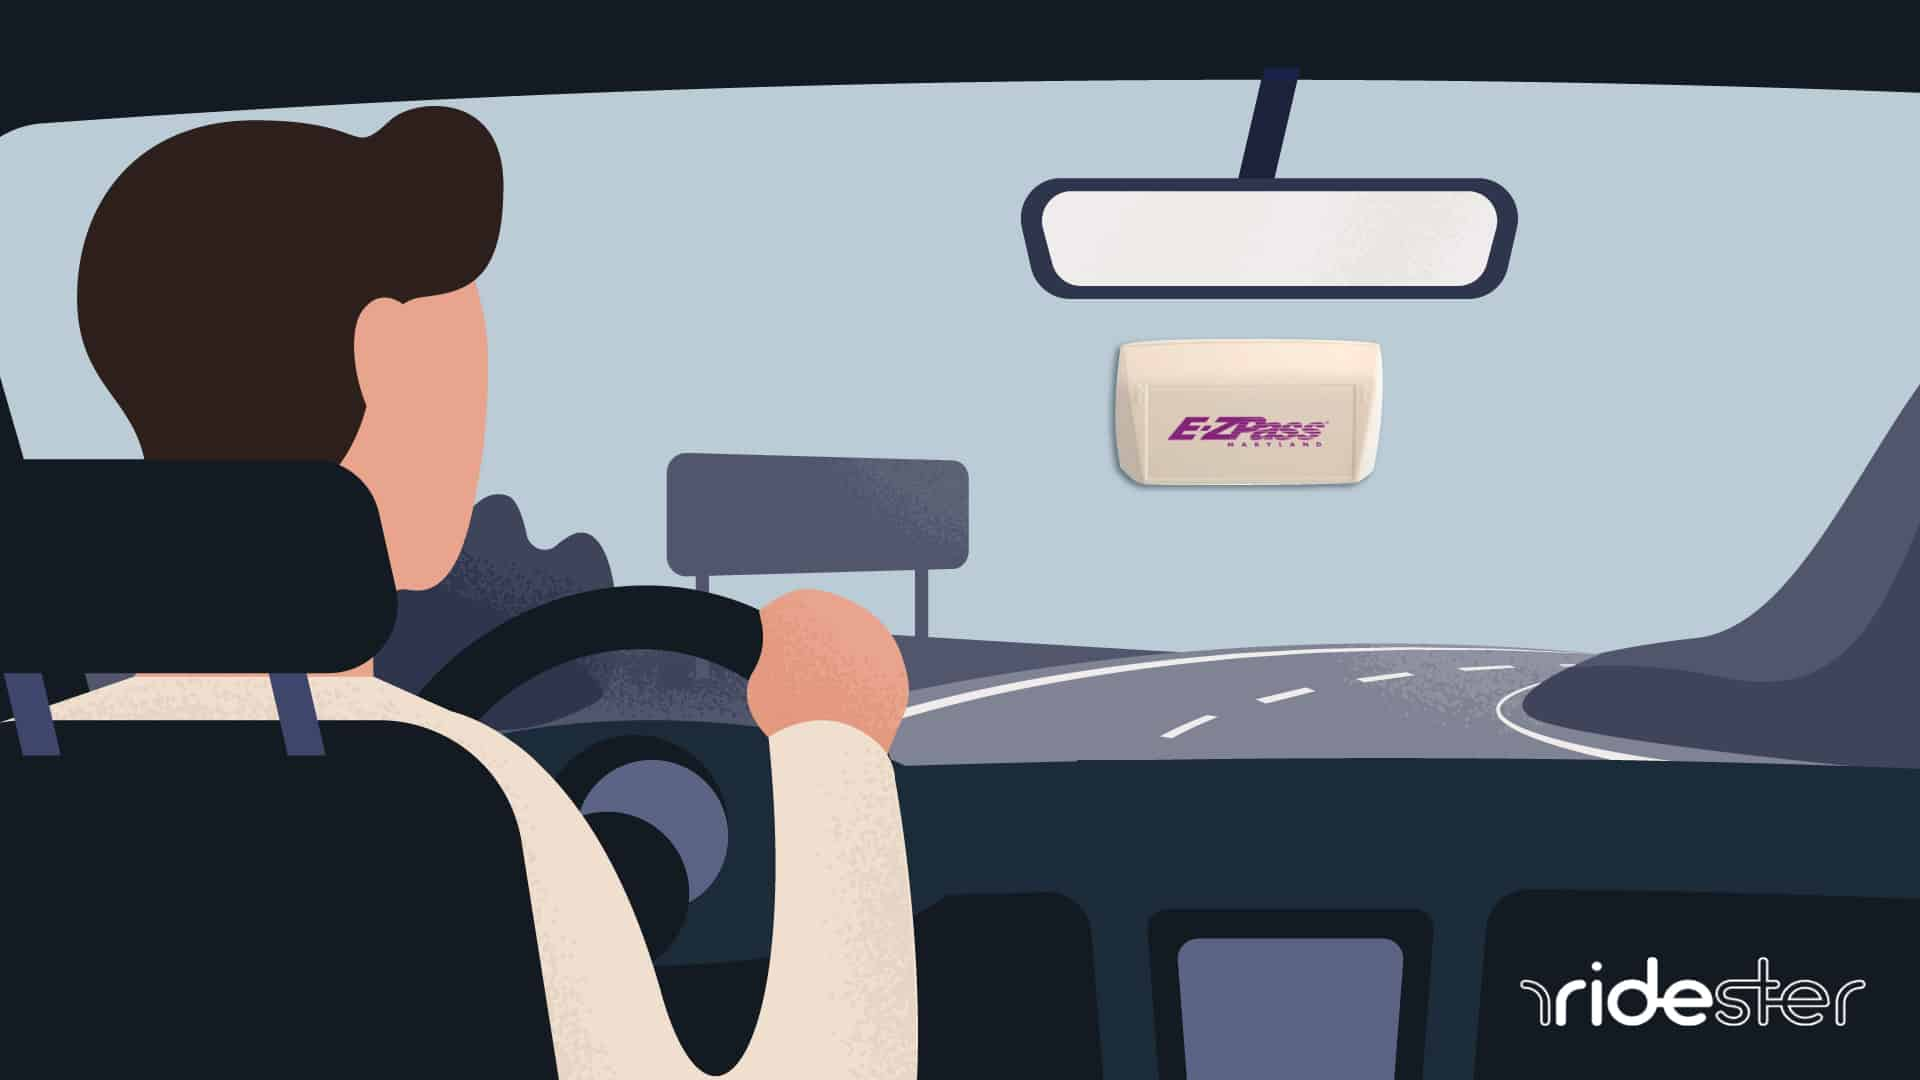 vector graphic showing ez pass on windshield of car driving down highway